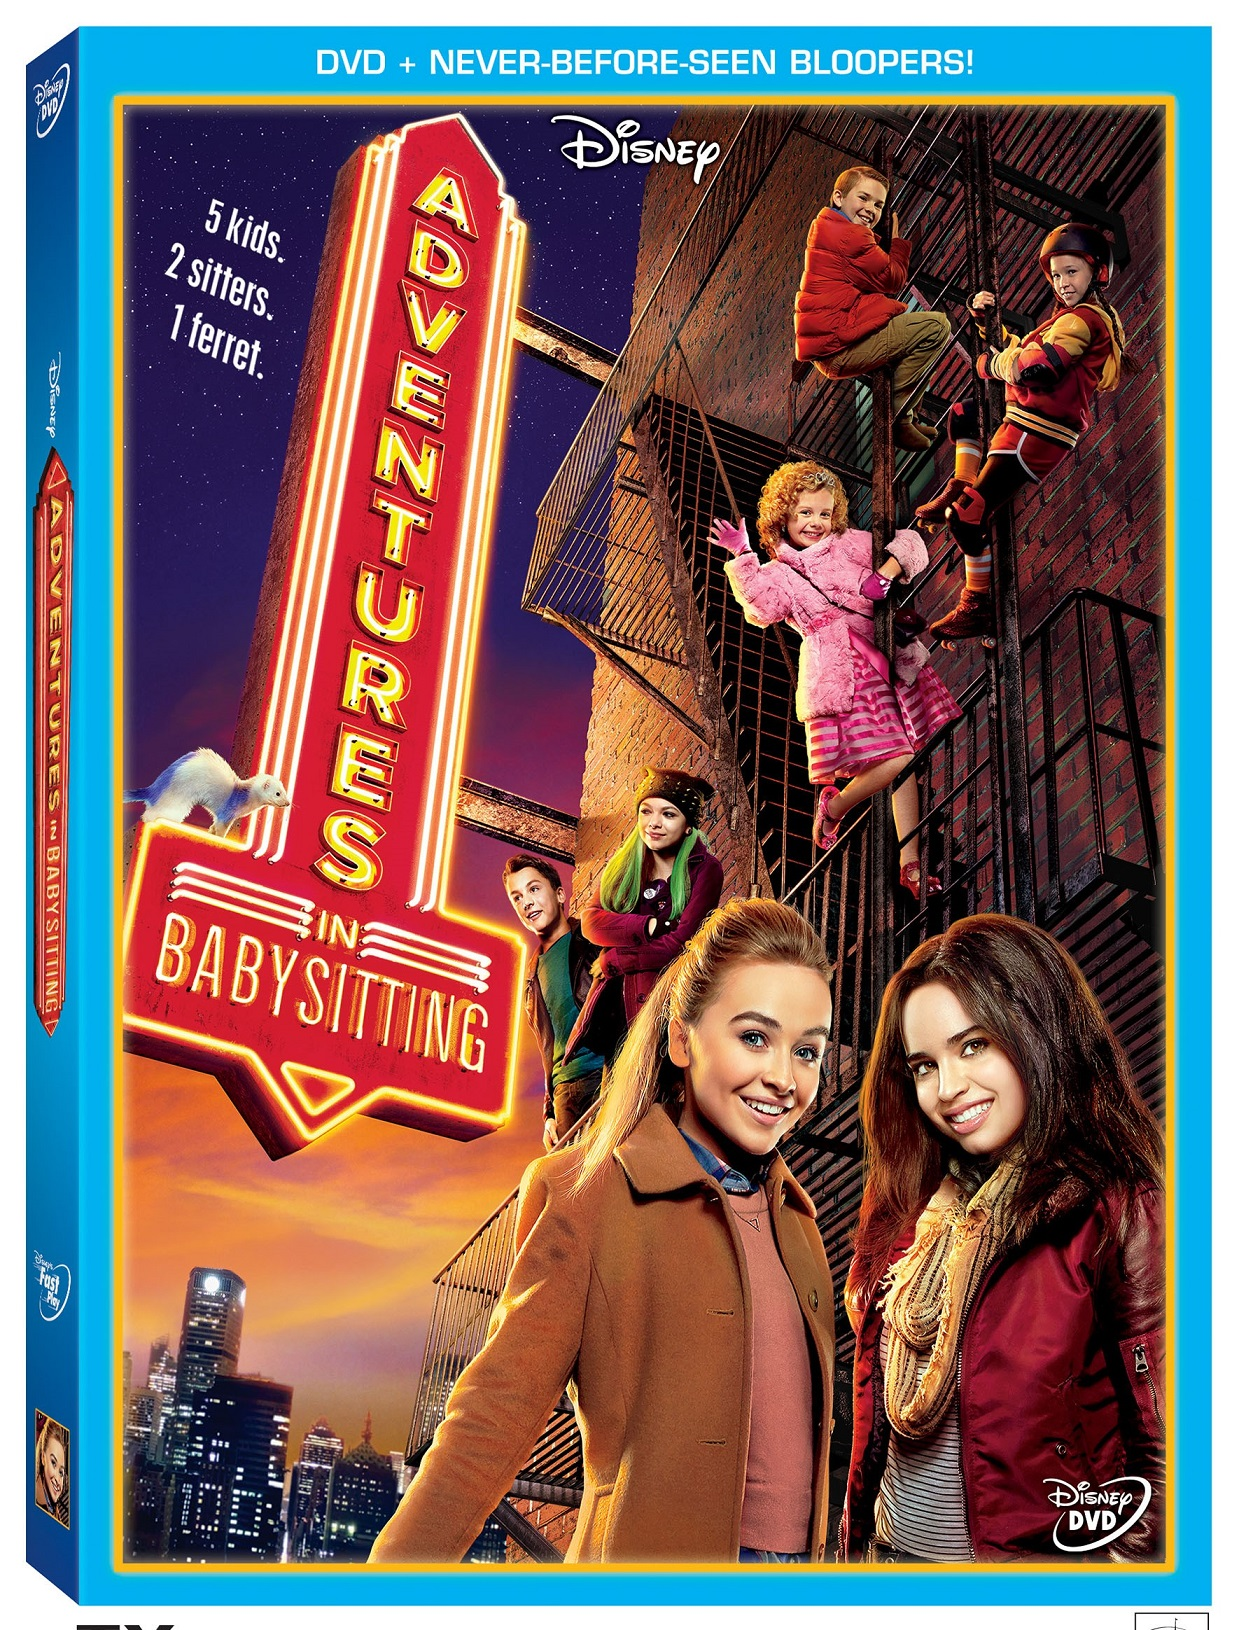 Adventures In Babysitting DVD pic